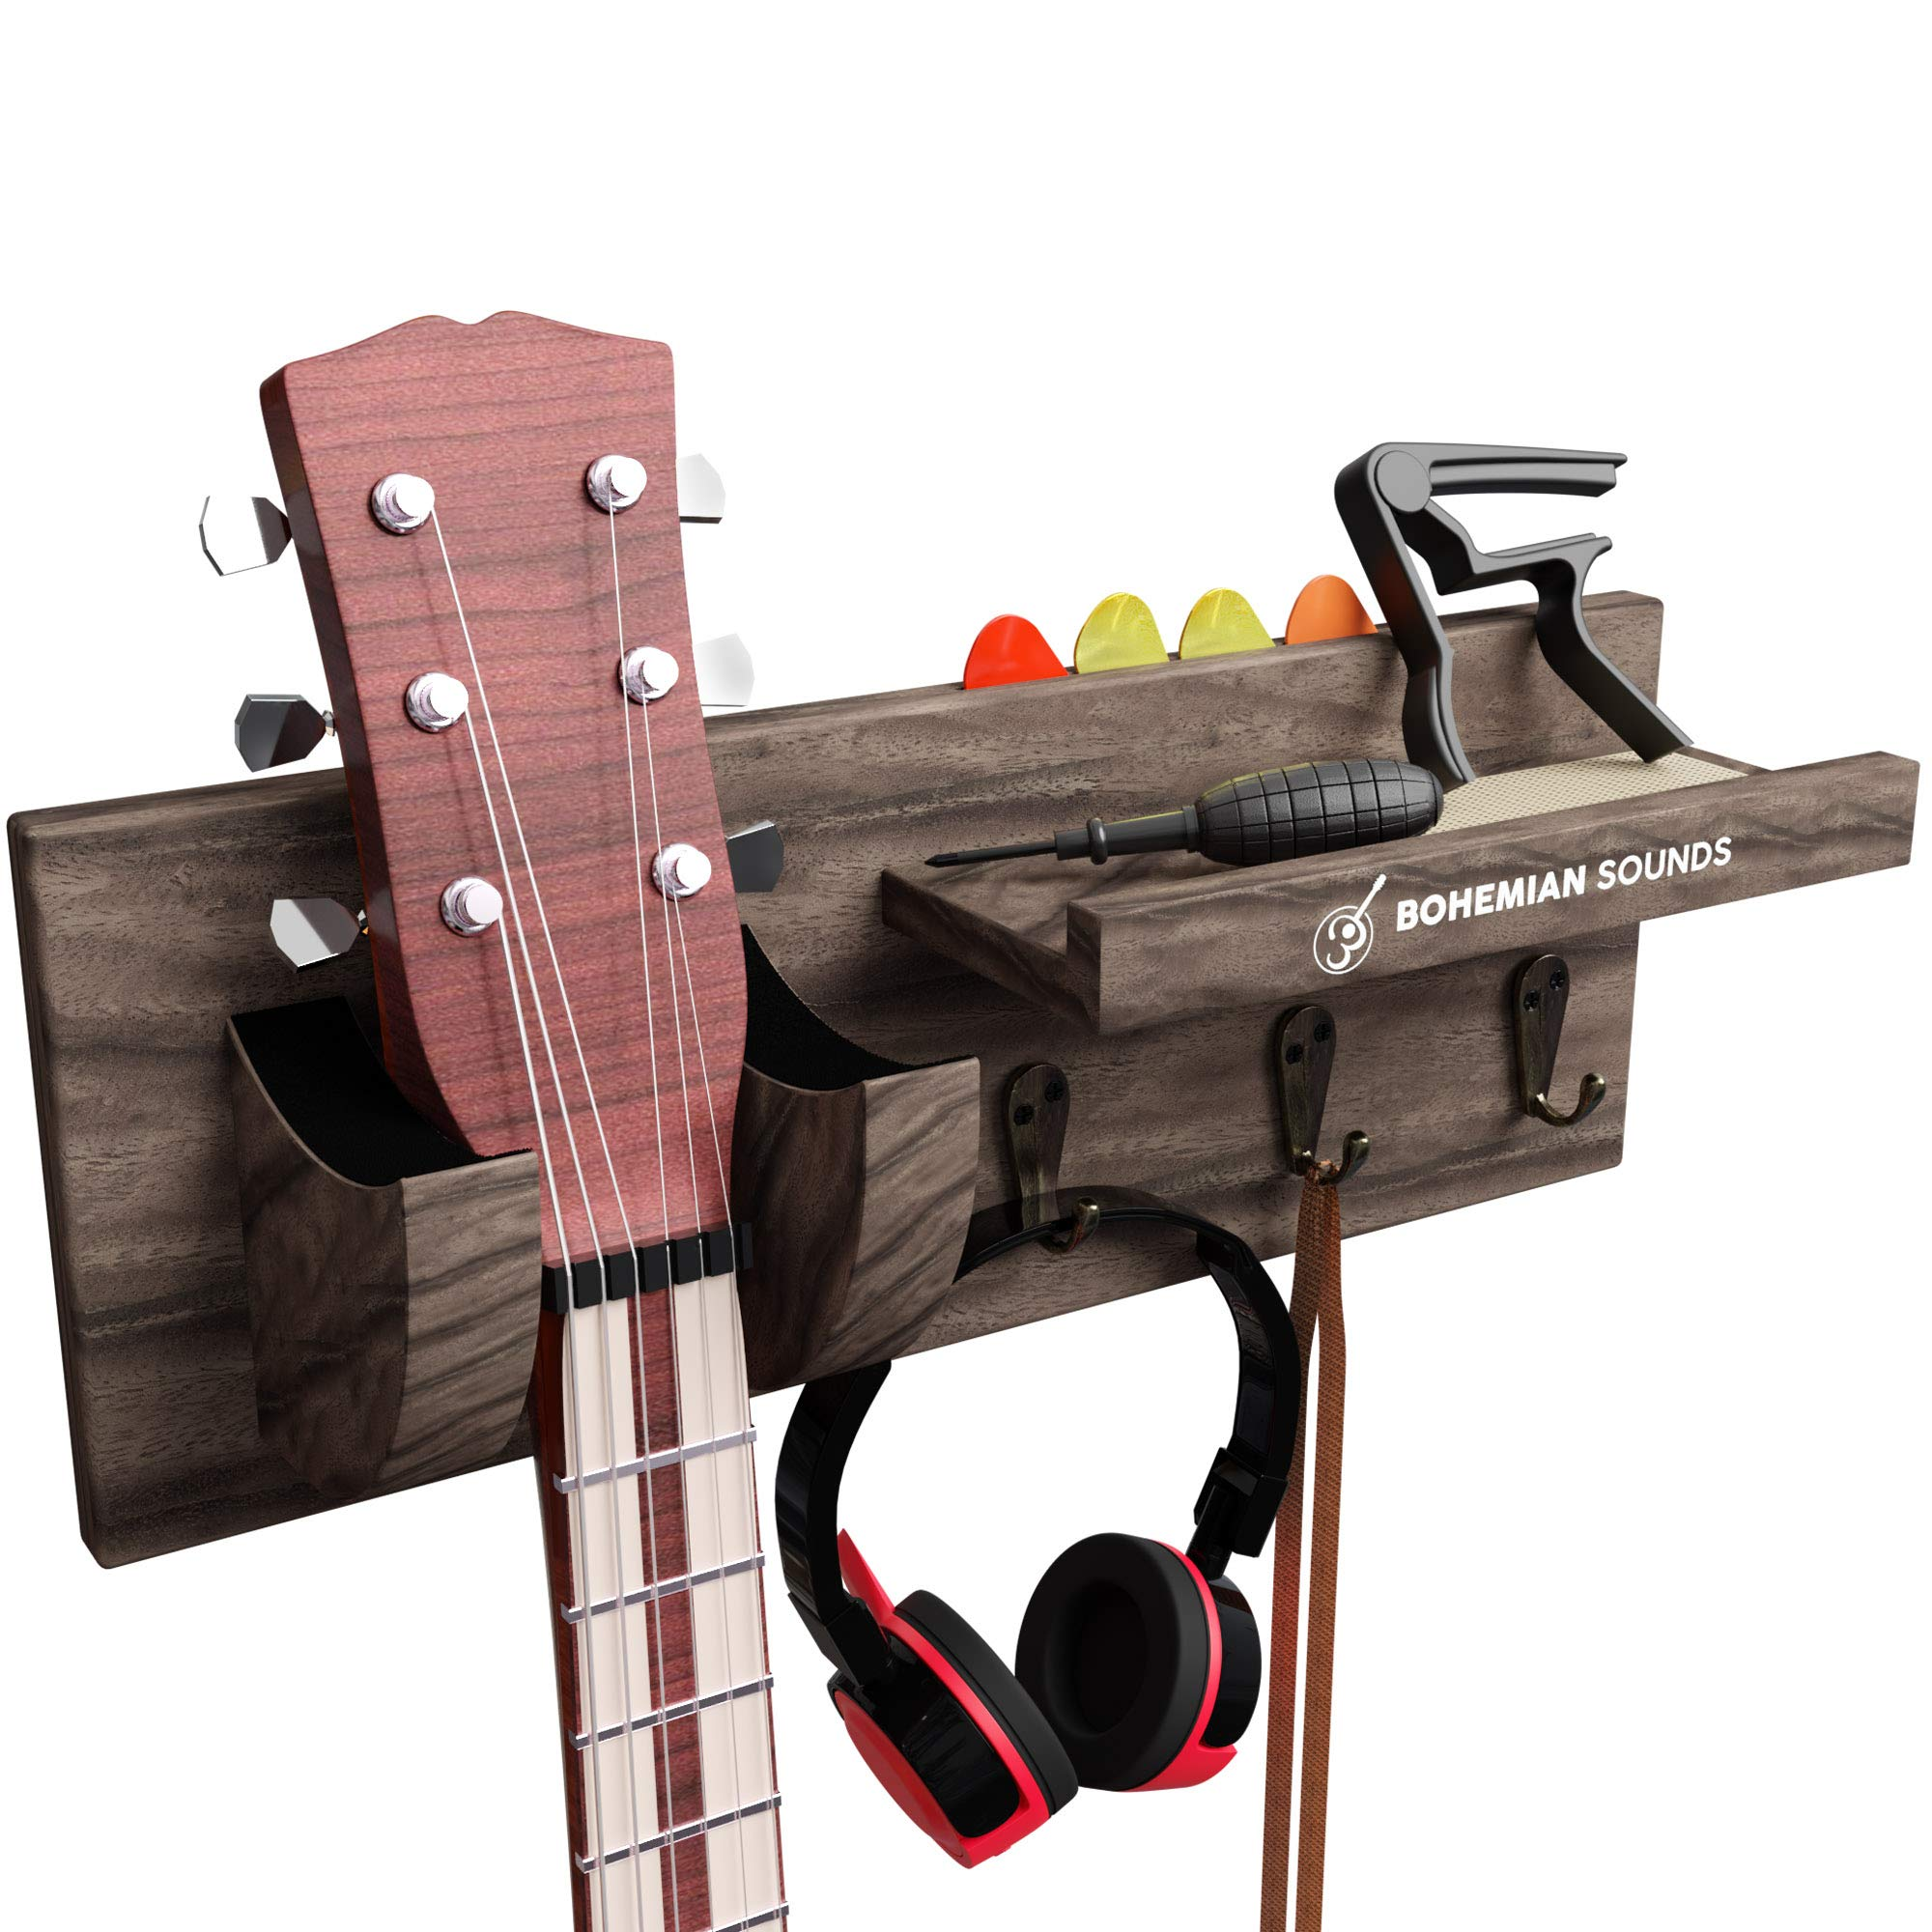 Guitar Wall Hanger by Bohemian Sounds - DARK BROWN - Guitar Wall Mount with Guitar Picks and Capo - Guitar Wall Hanger Bracket Hanger Guitar Wood Hanging with Pick Holder - Gift For Musician